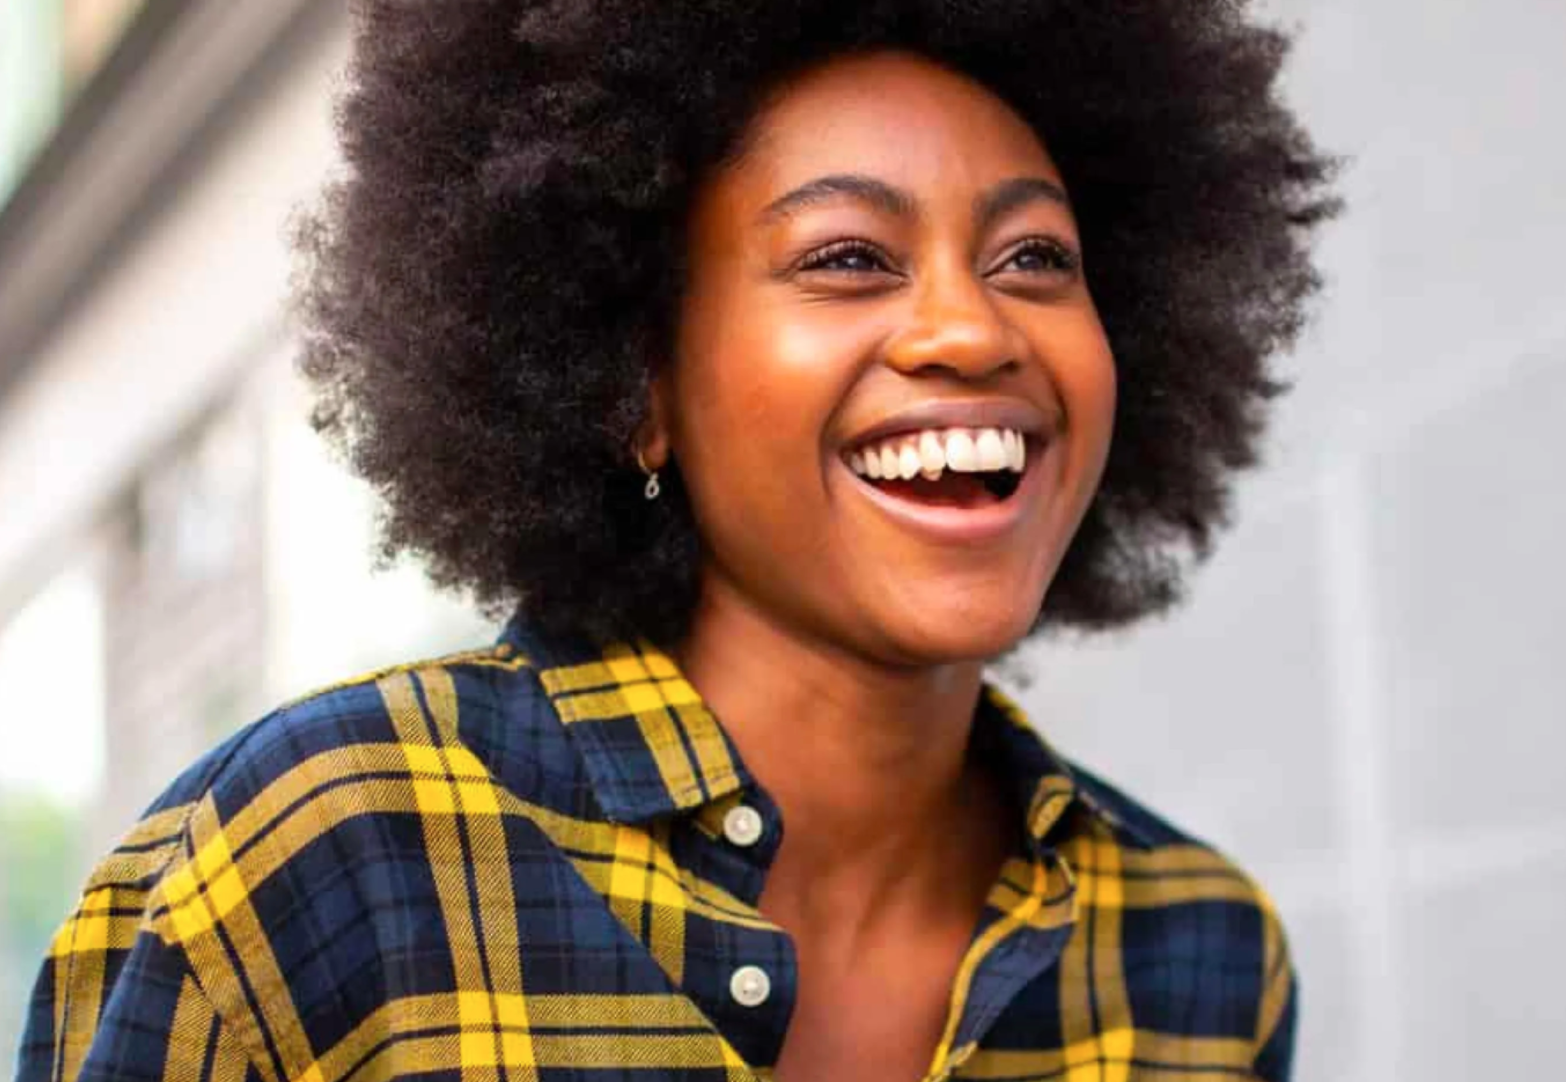 a woman with plaid flannel shirt and afro smiling